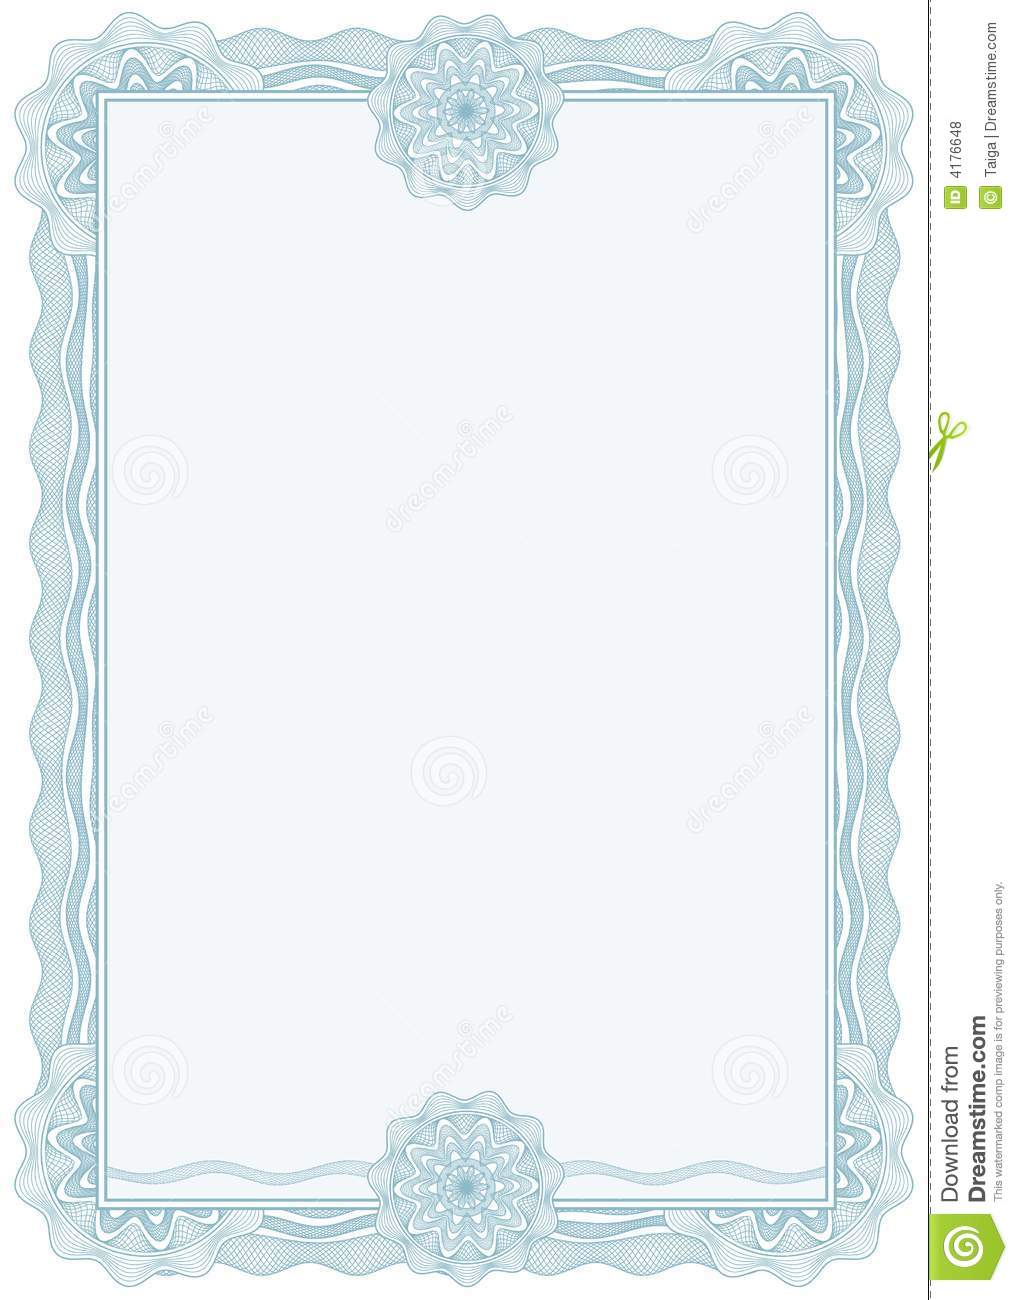 Diploma or certificate border a4 vector stock vector diploma or certificate border a4 vector yadclub